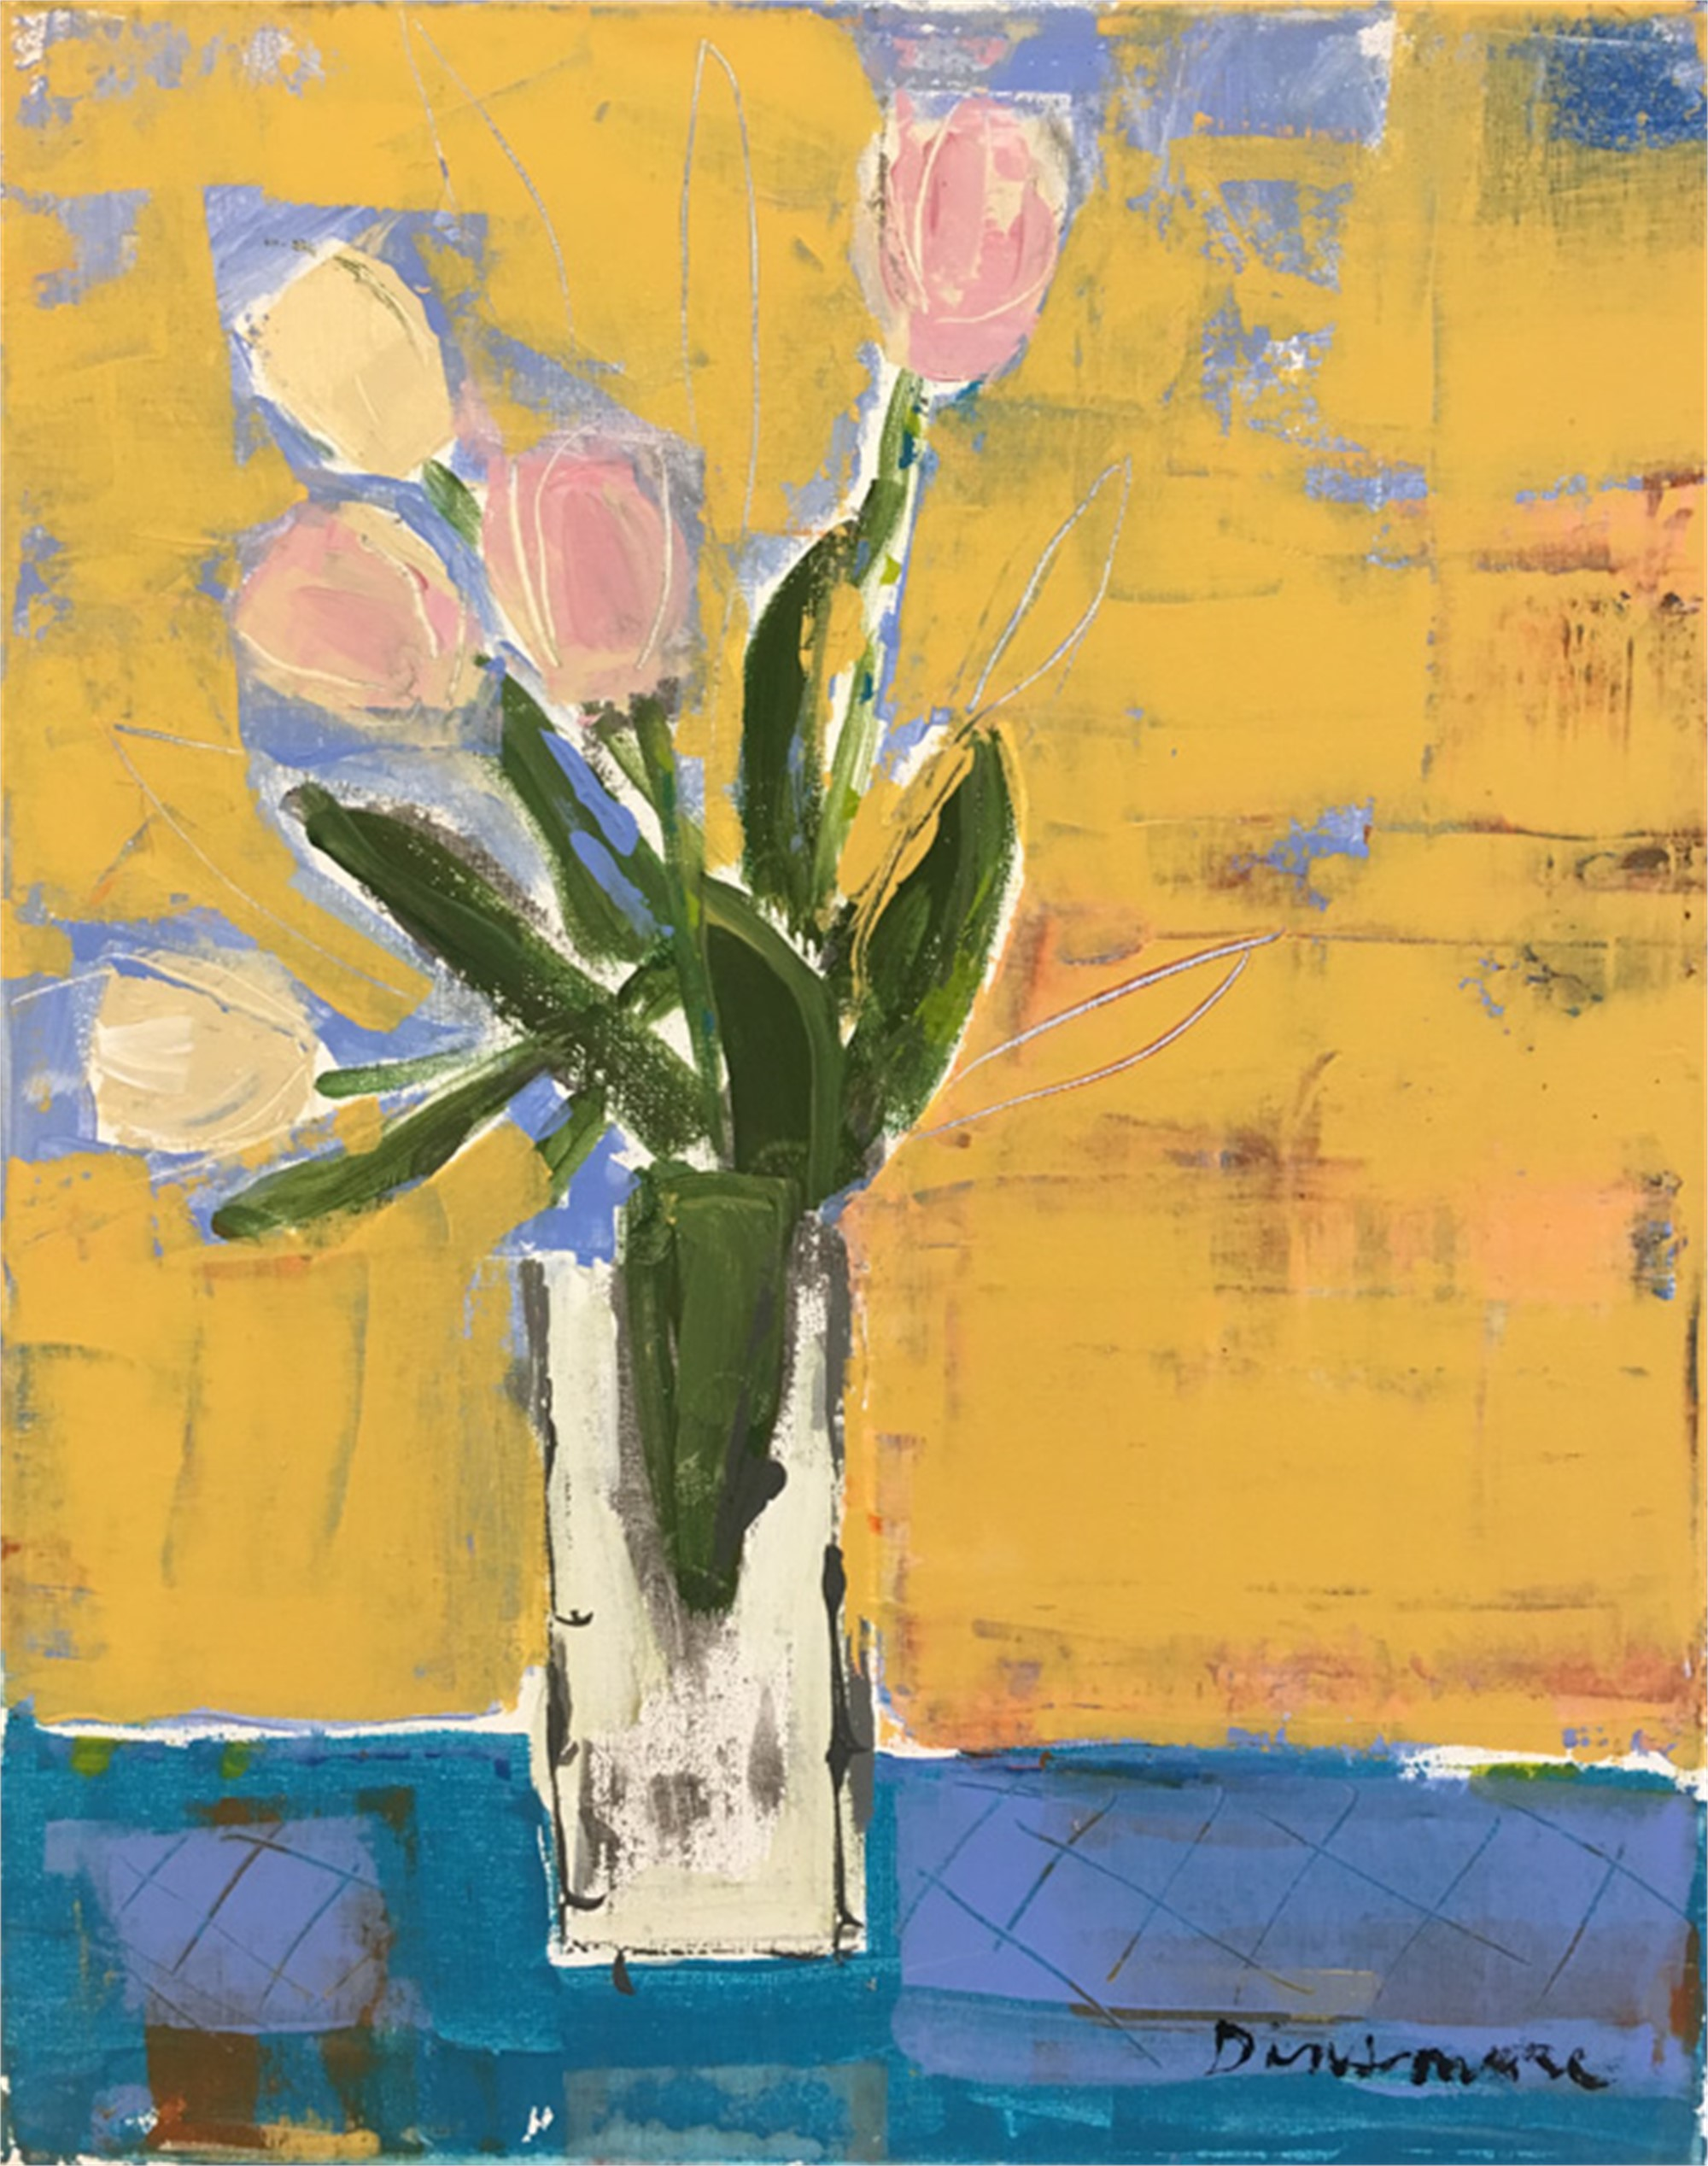 Five Tulips by Stephen Dinsmore